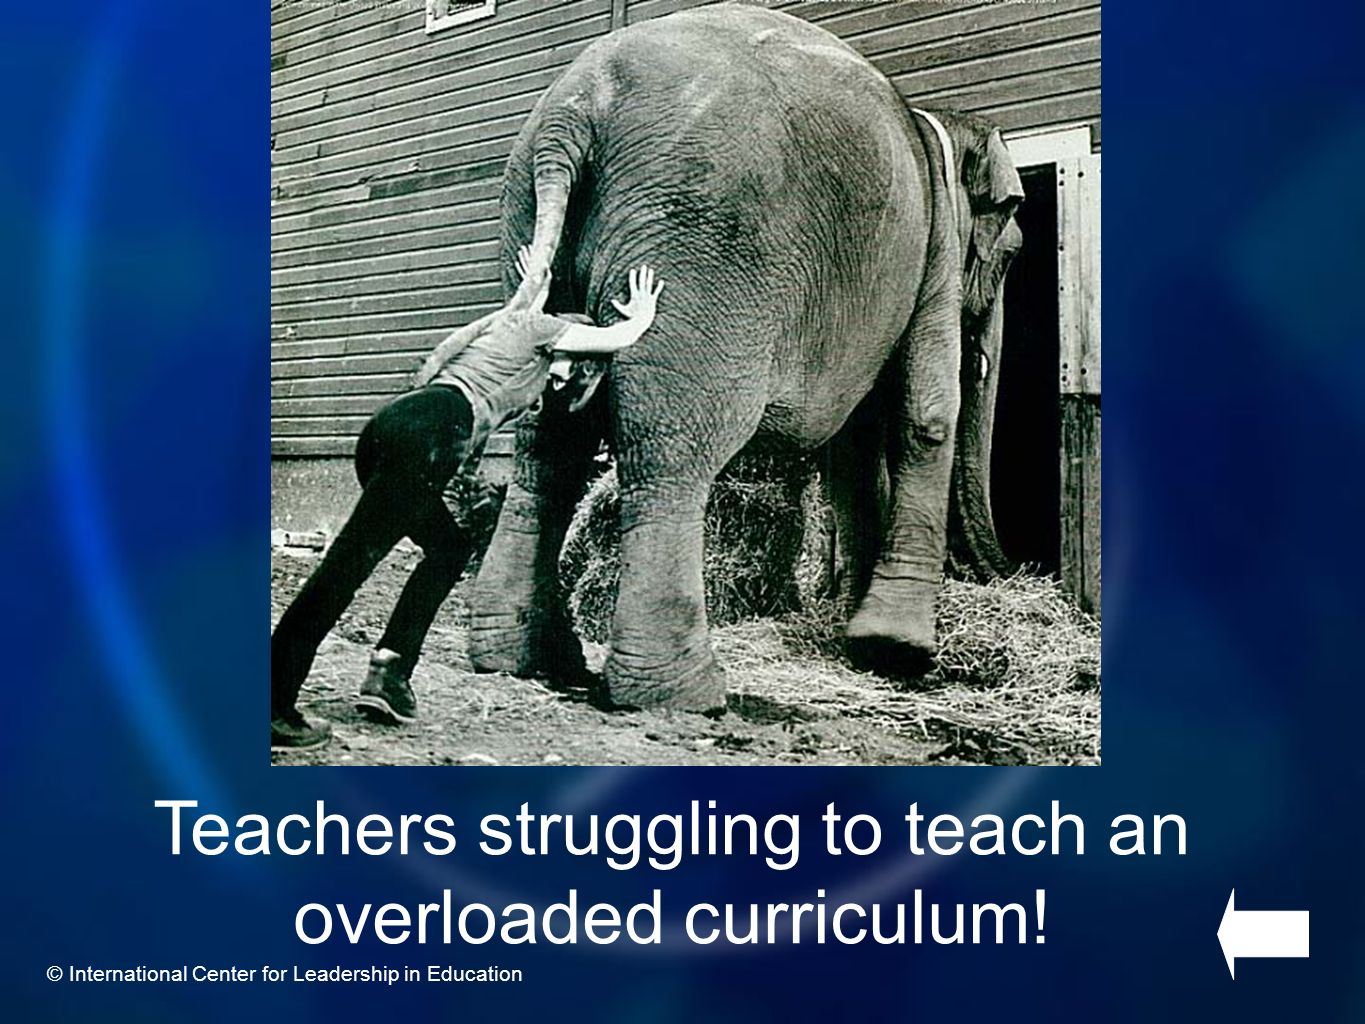 Teachers struggling to teach an overloaded curriculum!